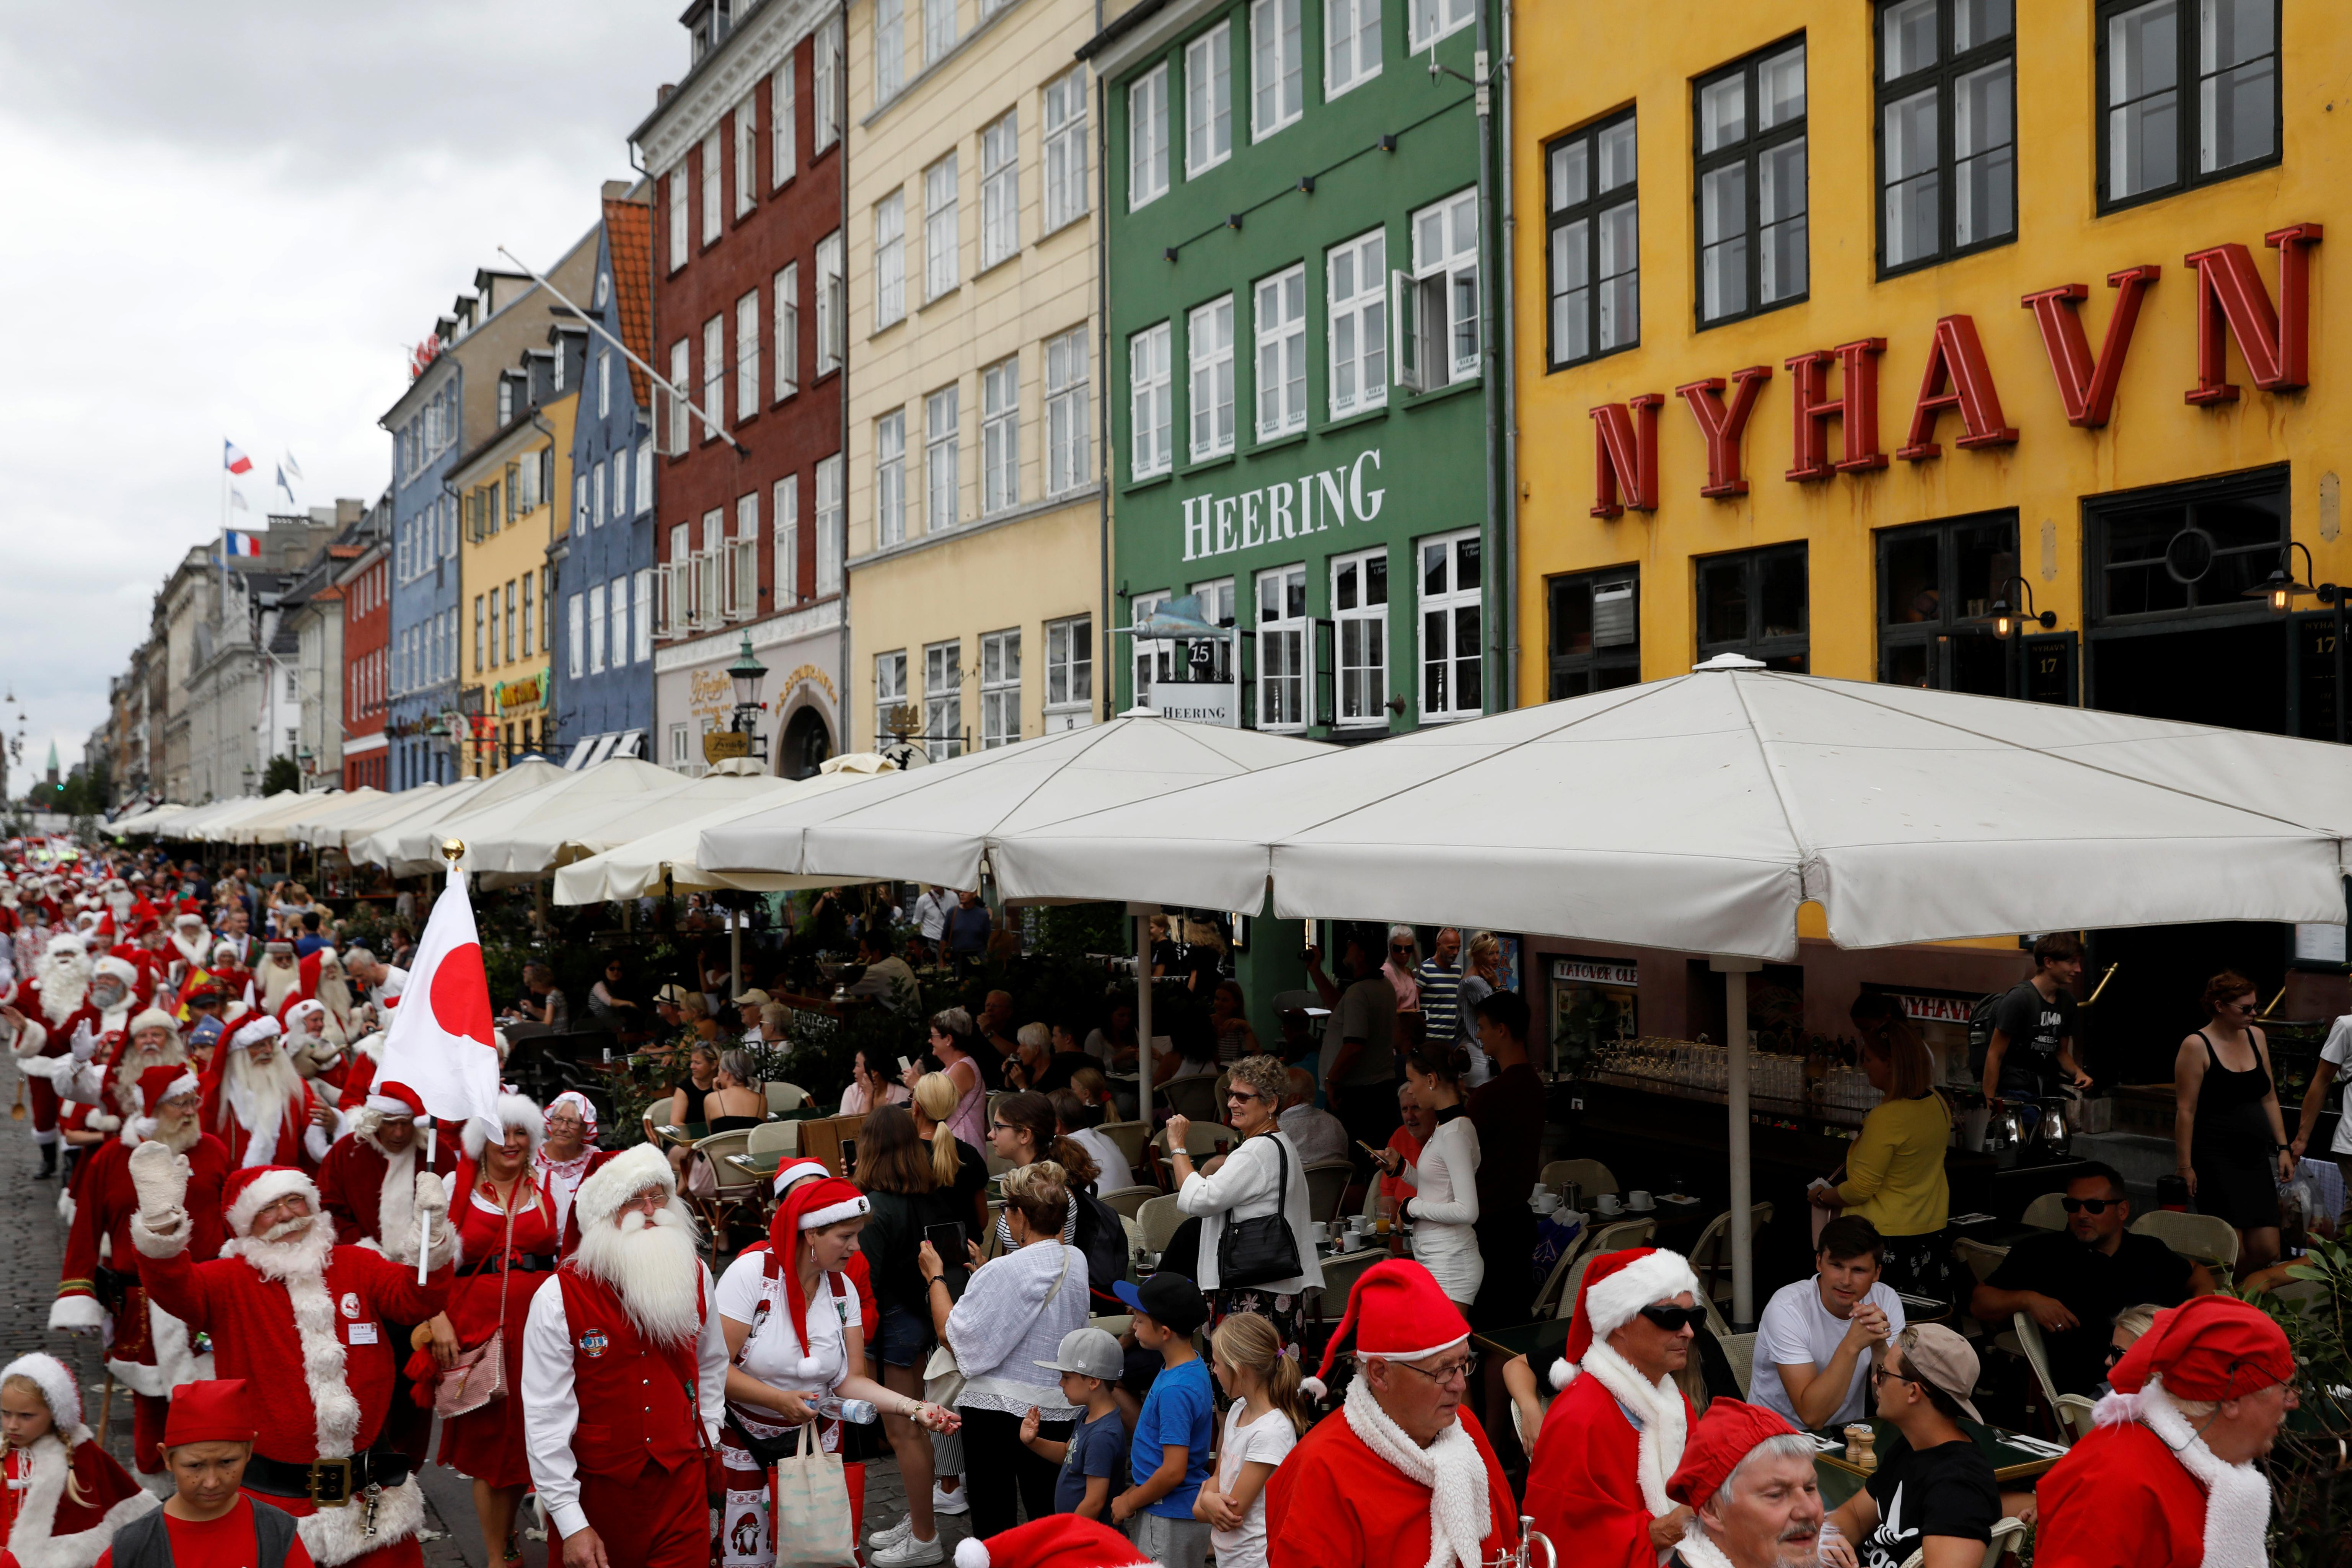 People dressed as Santa Claus walk along Nyhavn as they take part in the World Santa Claus Congress, an annual event held every summer in Copenhagen, Denmark, July 23, 2018.  Andrew Kelly